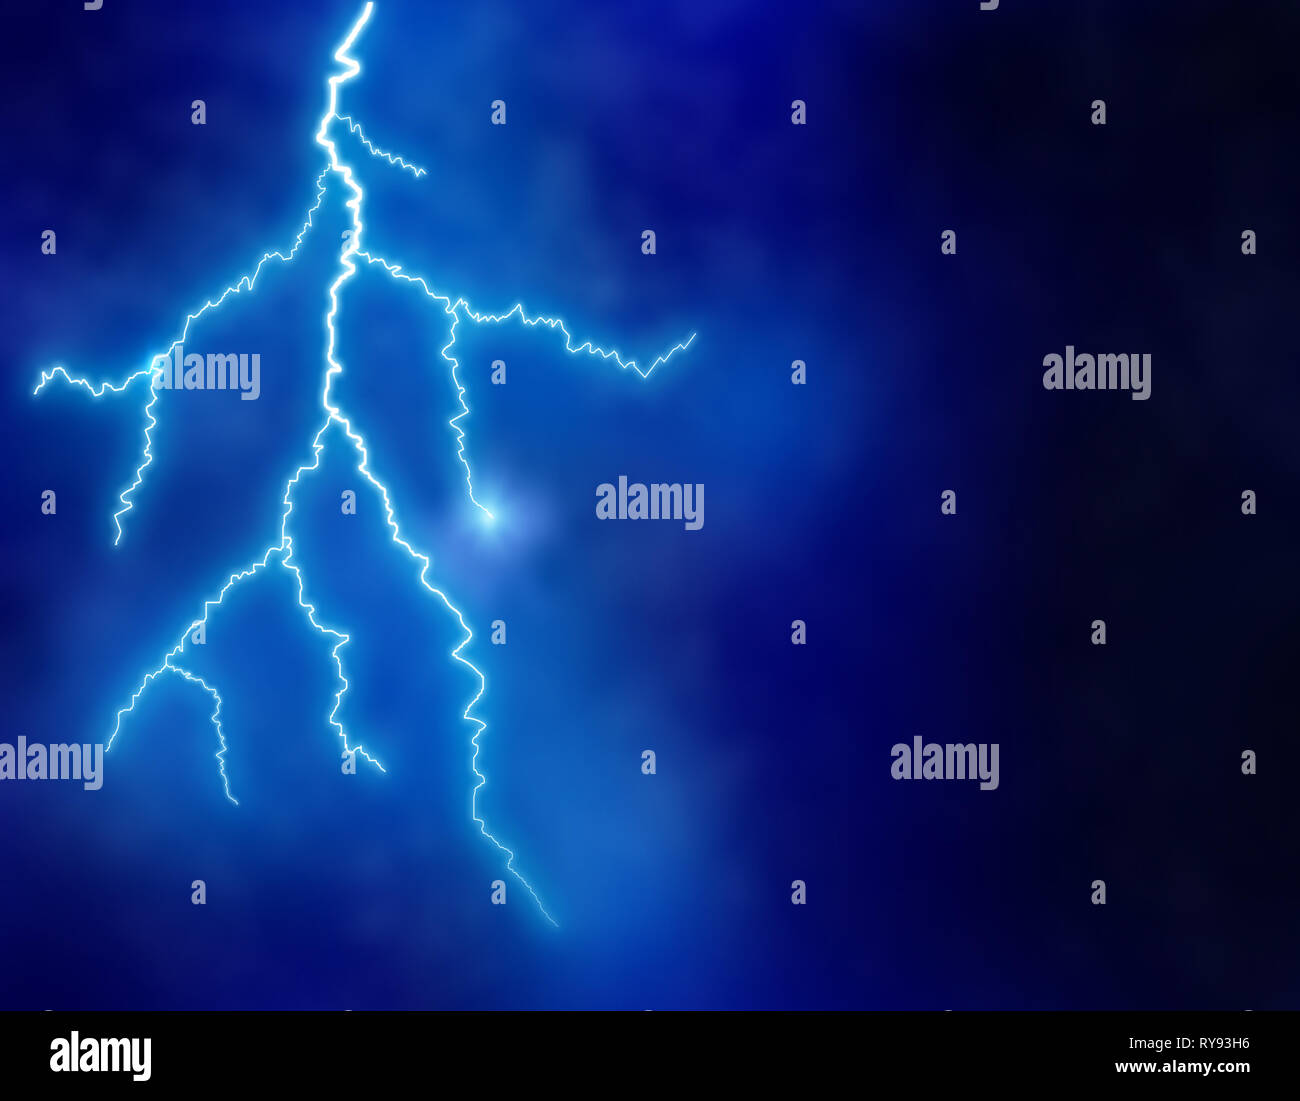 Lightning Background / See more lightning wallpaper, unbelievable lightning wallpapers, lightning dragon wallpaper, lightning looking for the best lightning wallpaper?